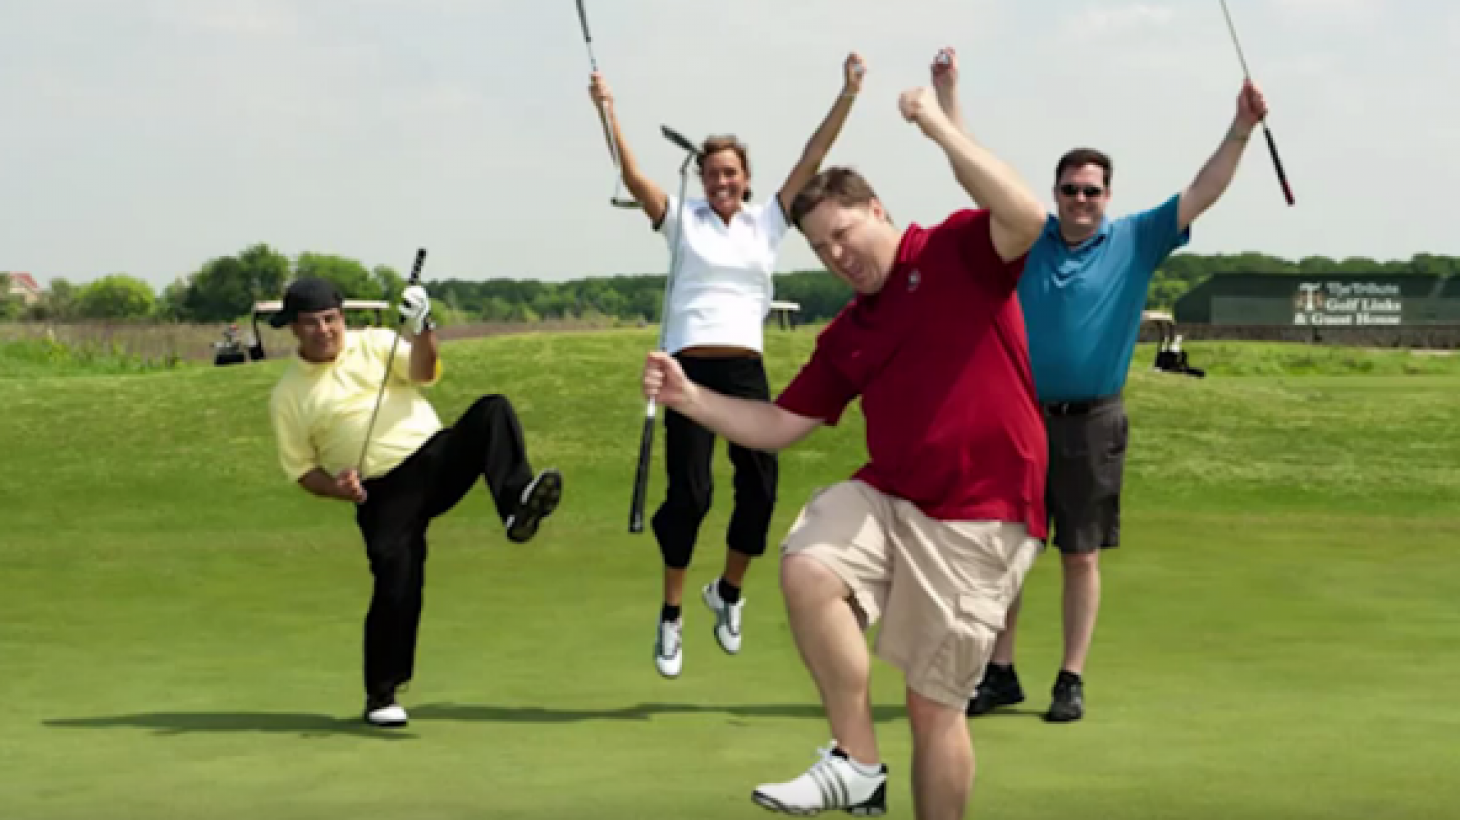 Create a fun golf tournament